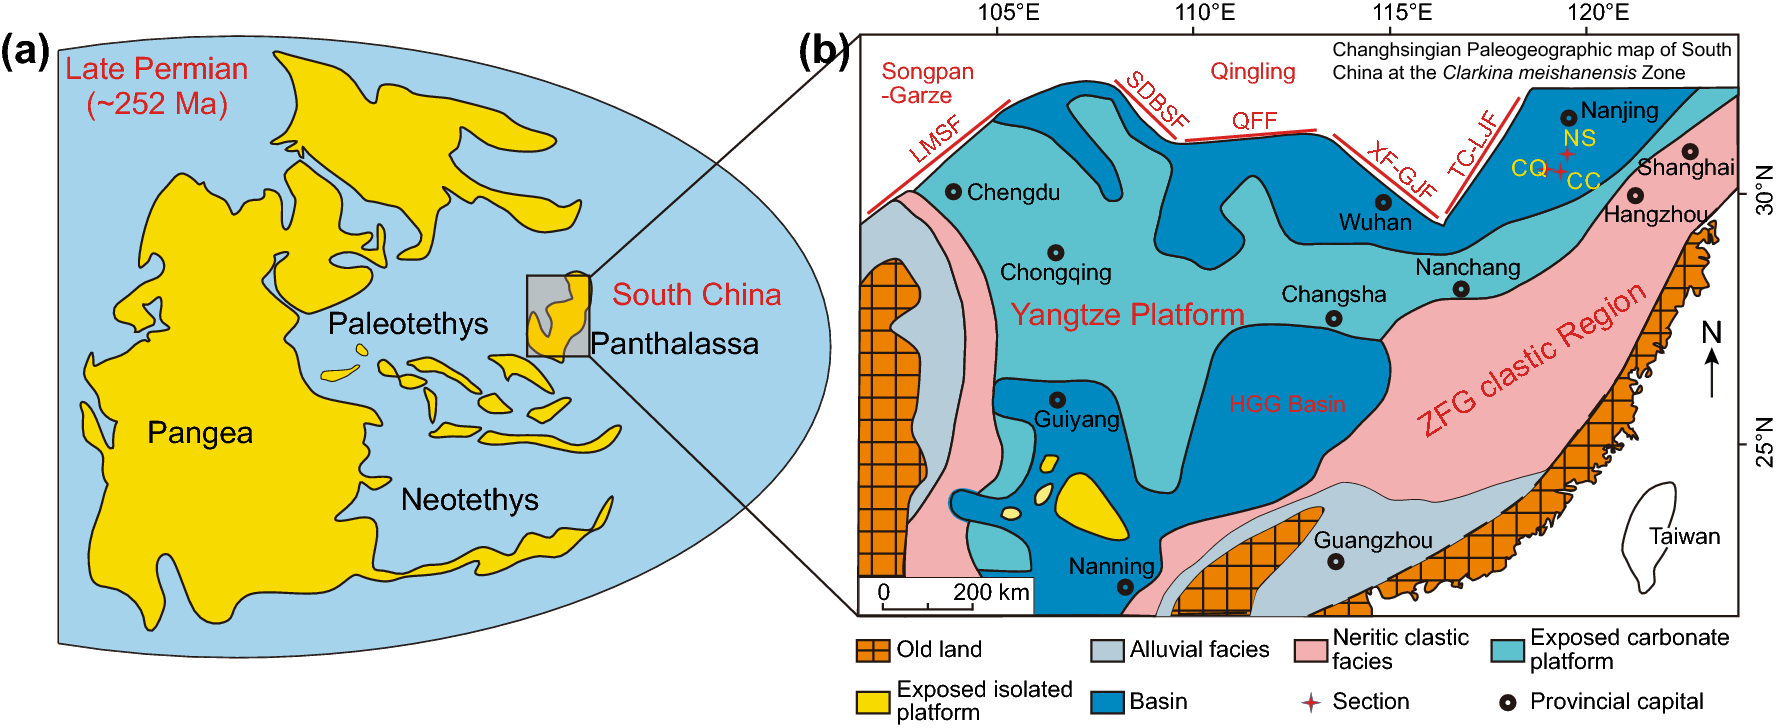 Geochemistry of upper Permian siliceous rocks from the Lower